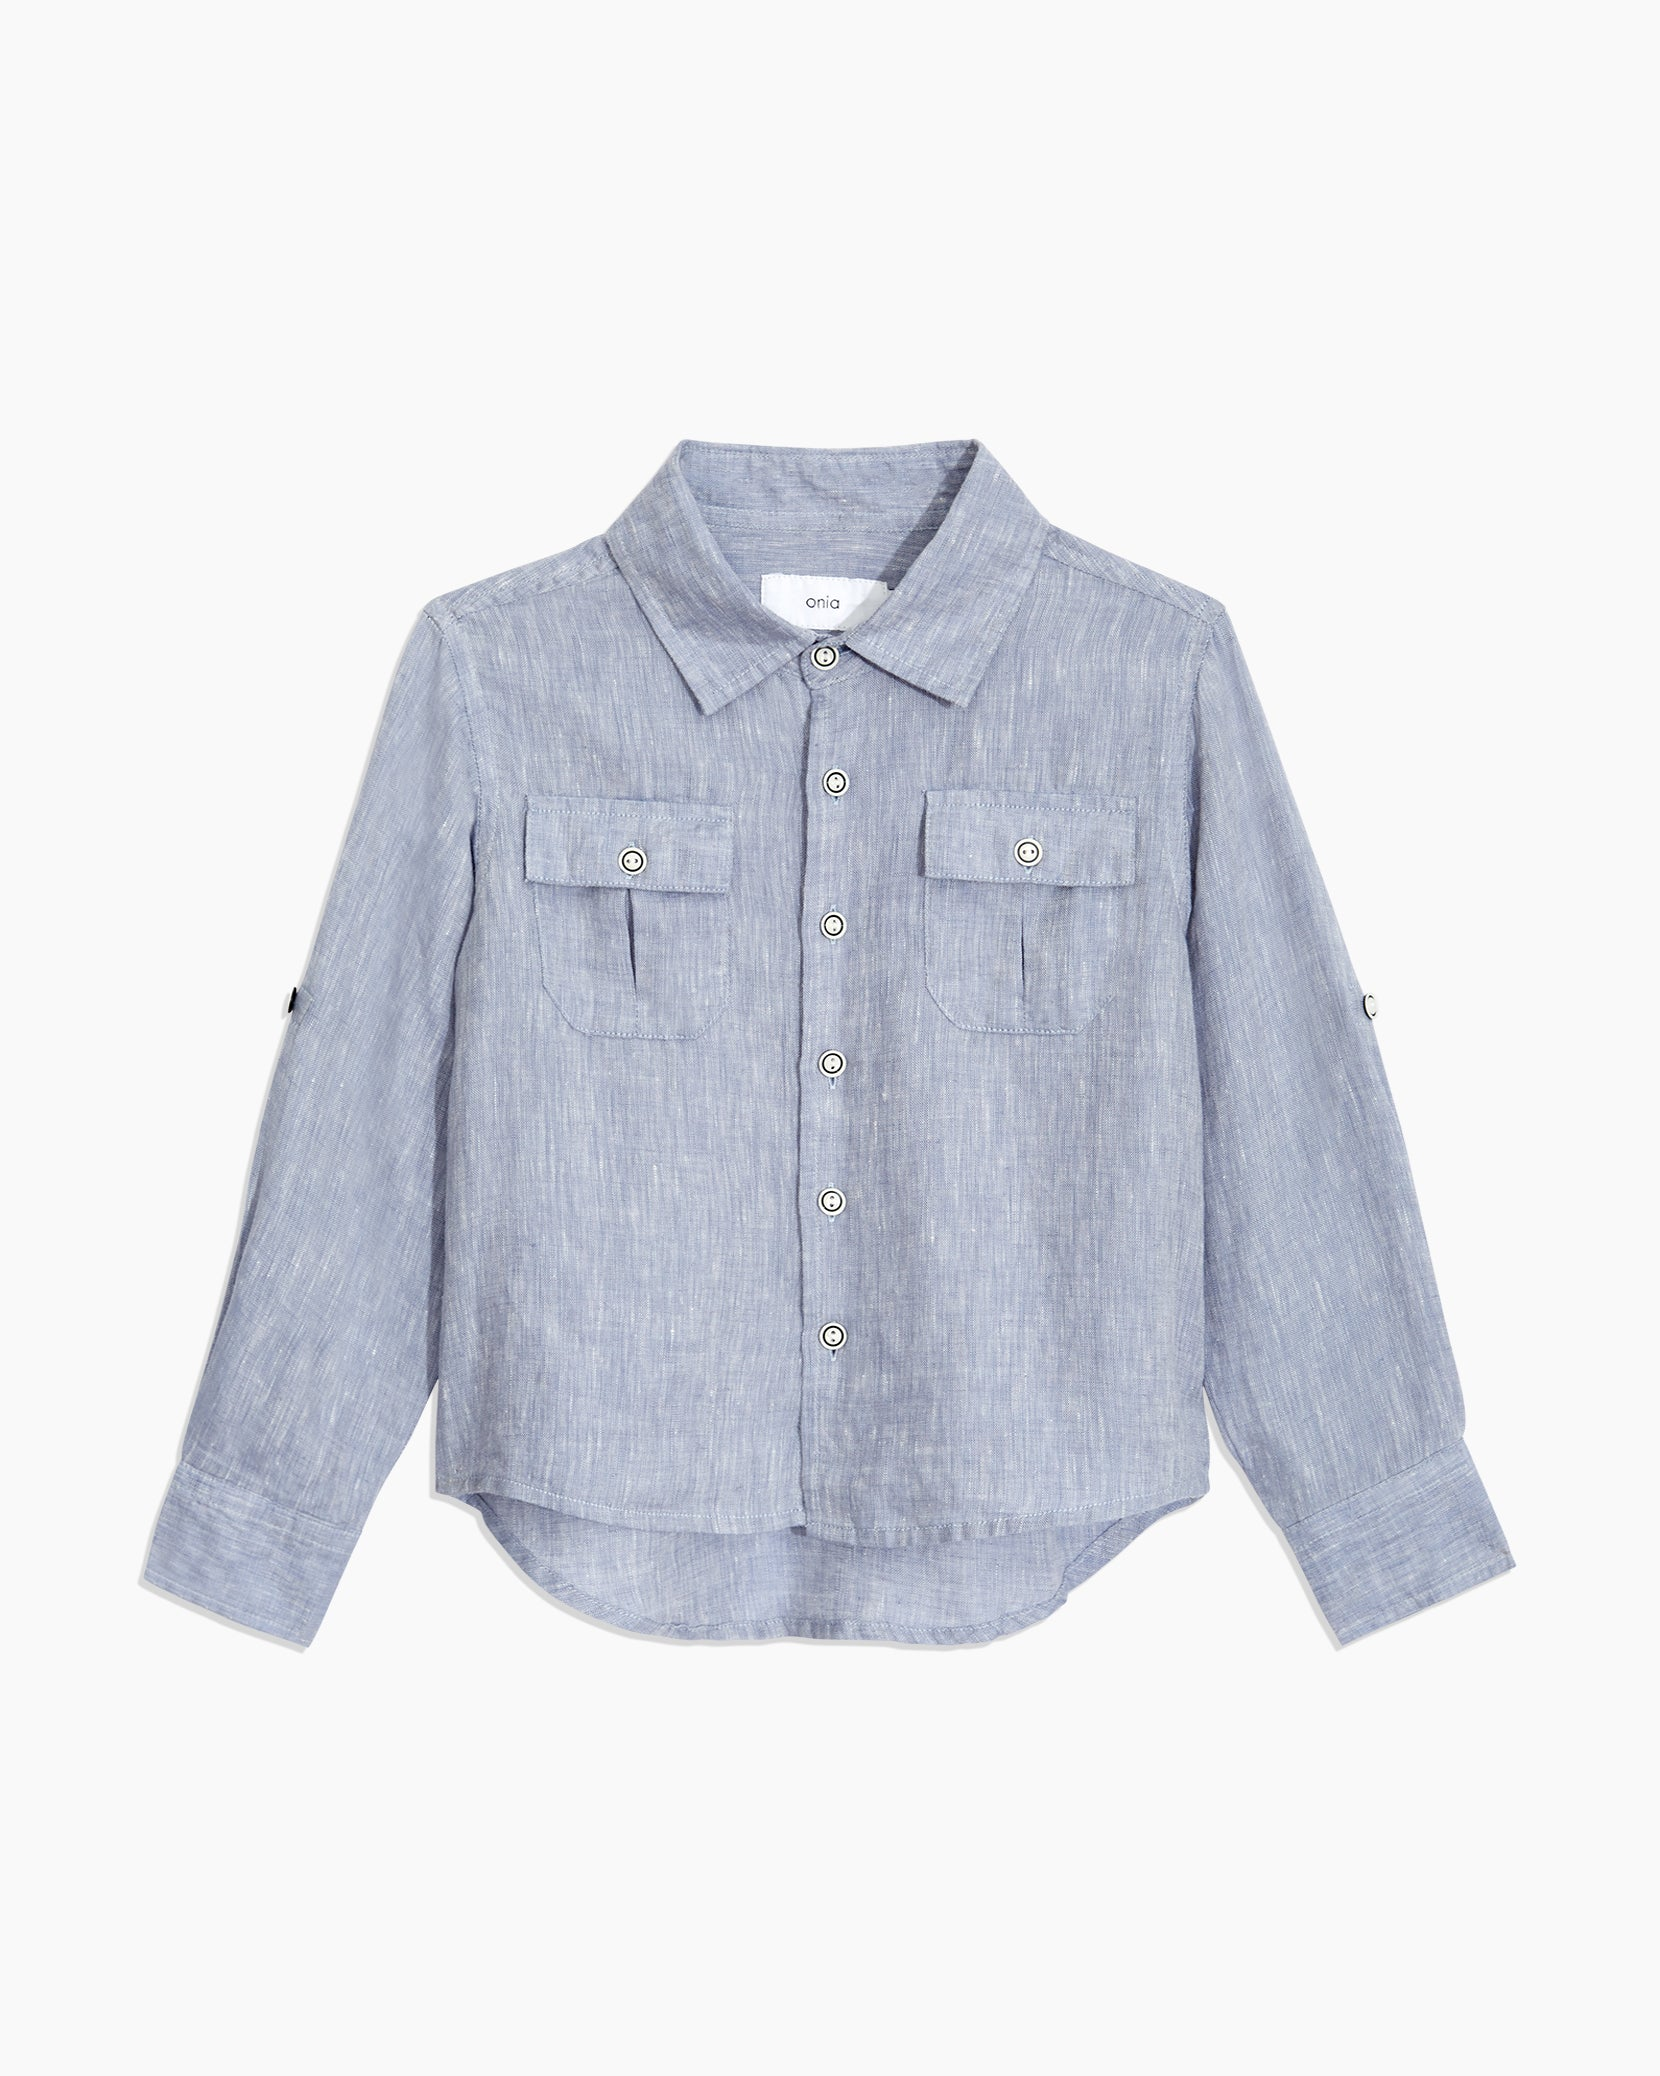 Boys Linen Garret Shirt in Denim - 1 - Onia